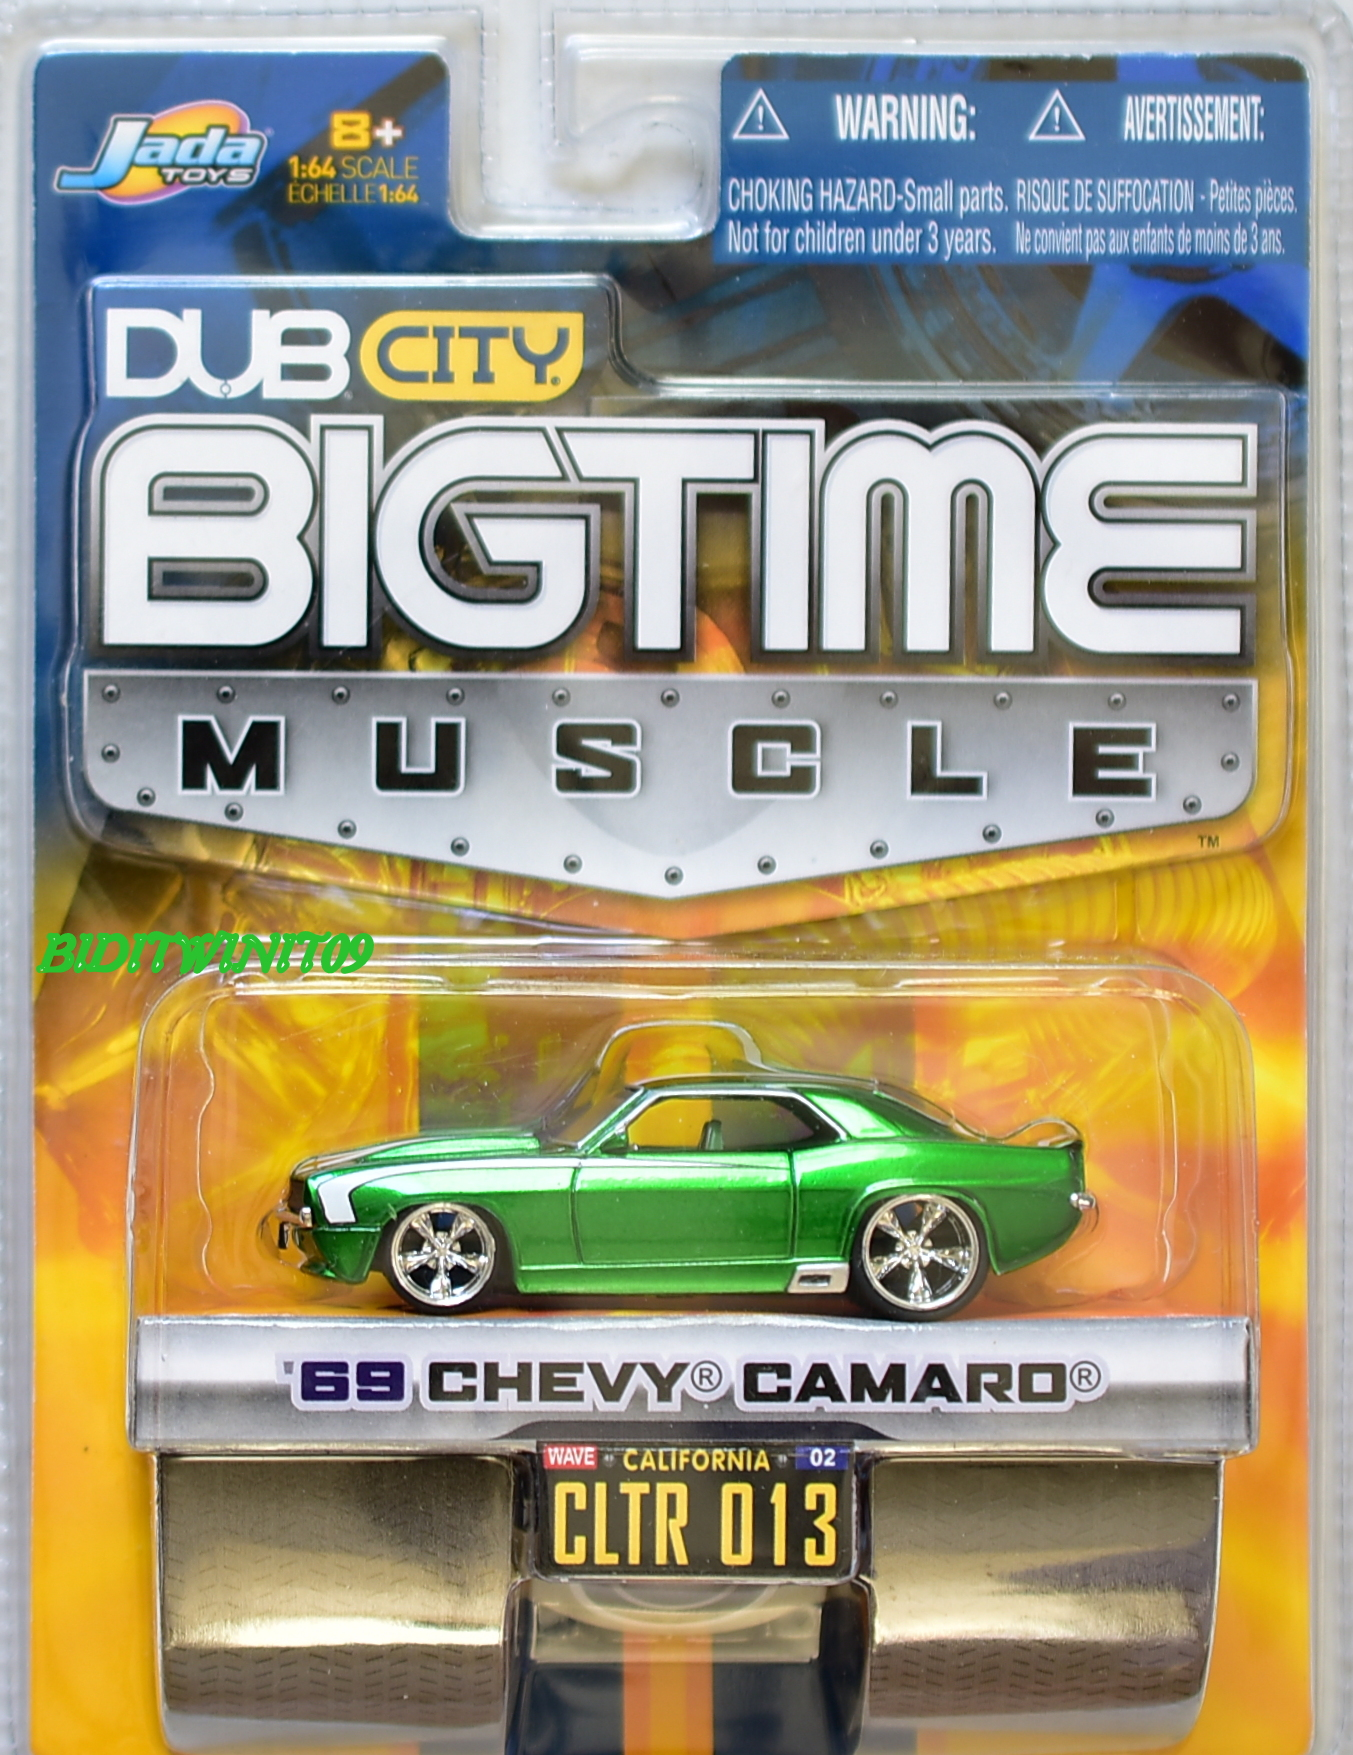 JADA DUB CITY BIGTIME MUSCLE '69 CHEVY CAMARO GREEN CLTR 013